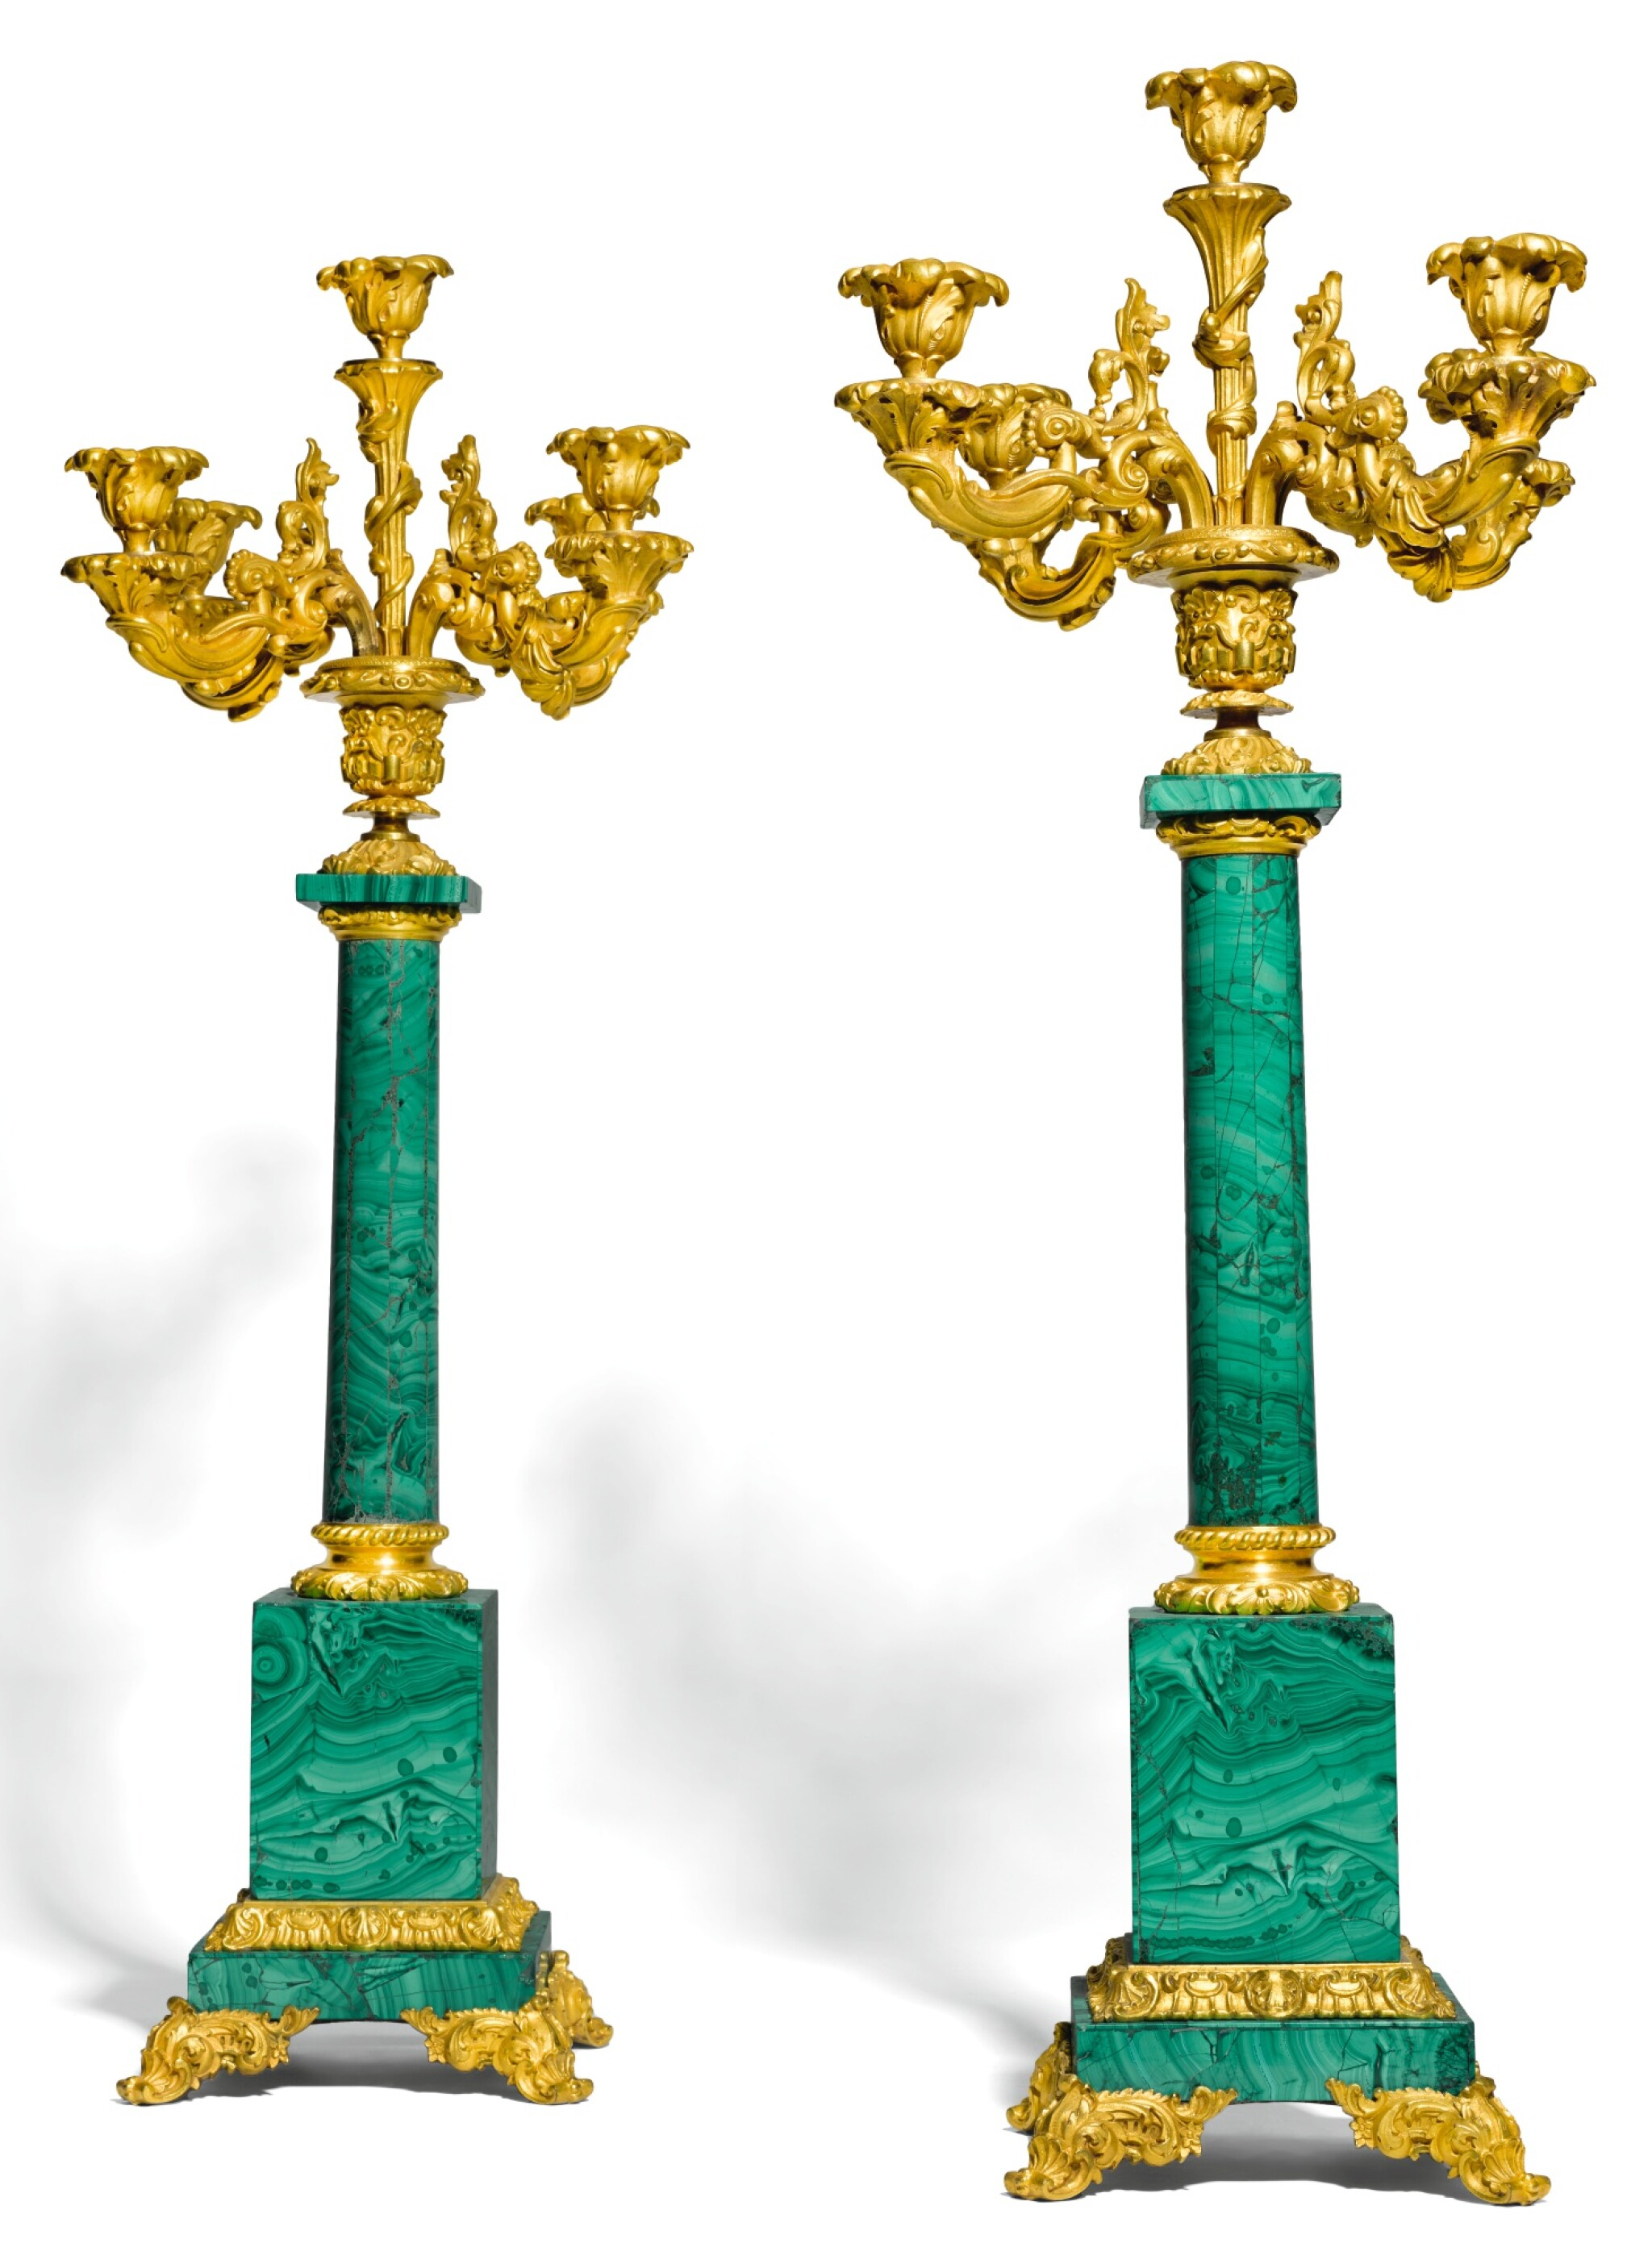 A PAIR OF RUSSIAN GILT-BRONZE MOUNTED MALACHITE FIVE-LIGHT CANDELABRA SECOND QUARTER 19TH CENTURY